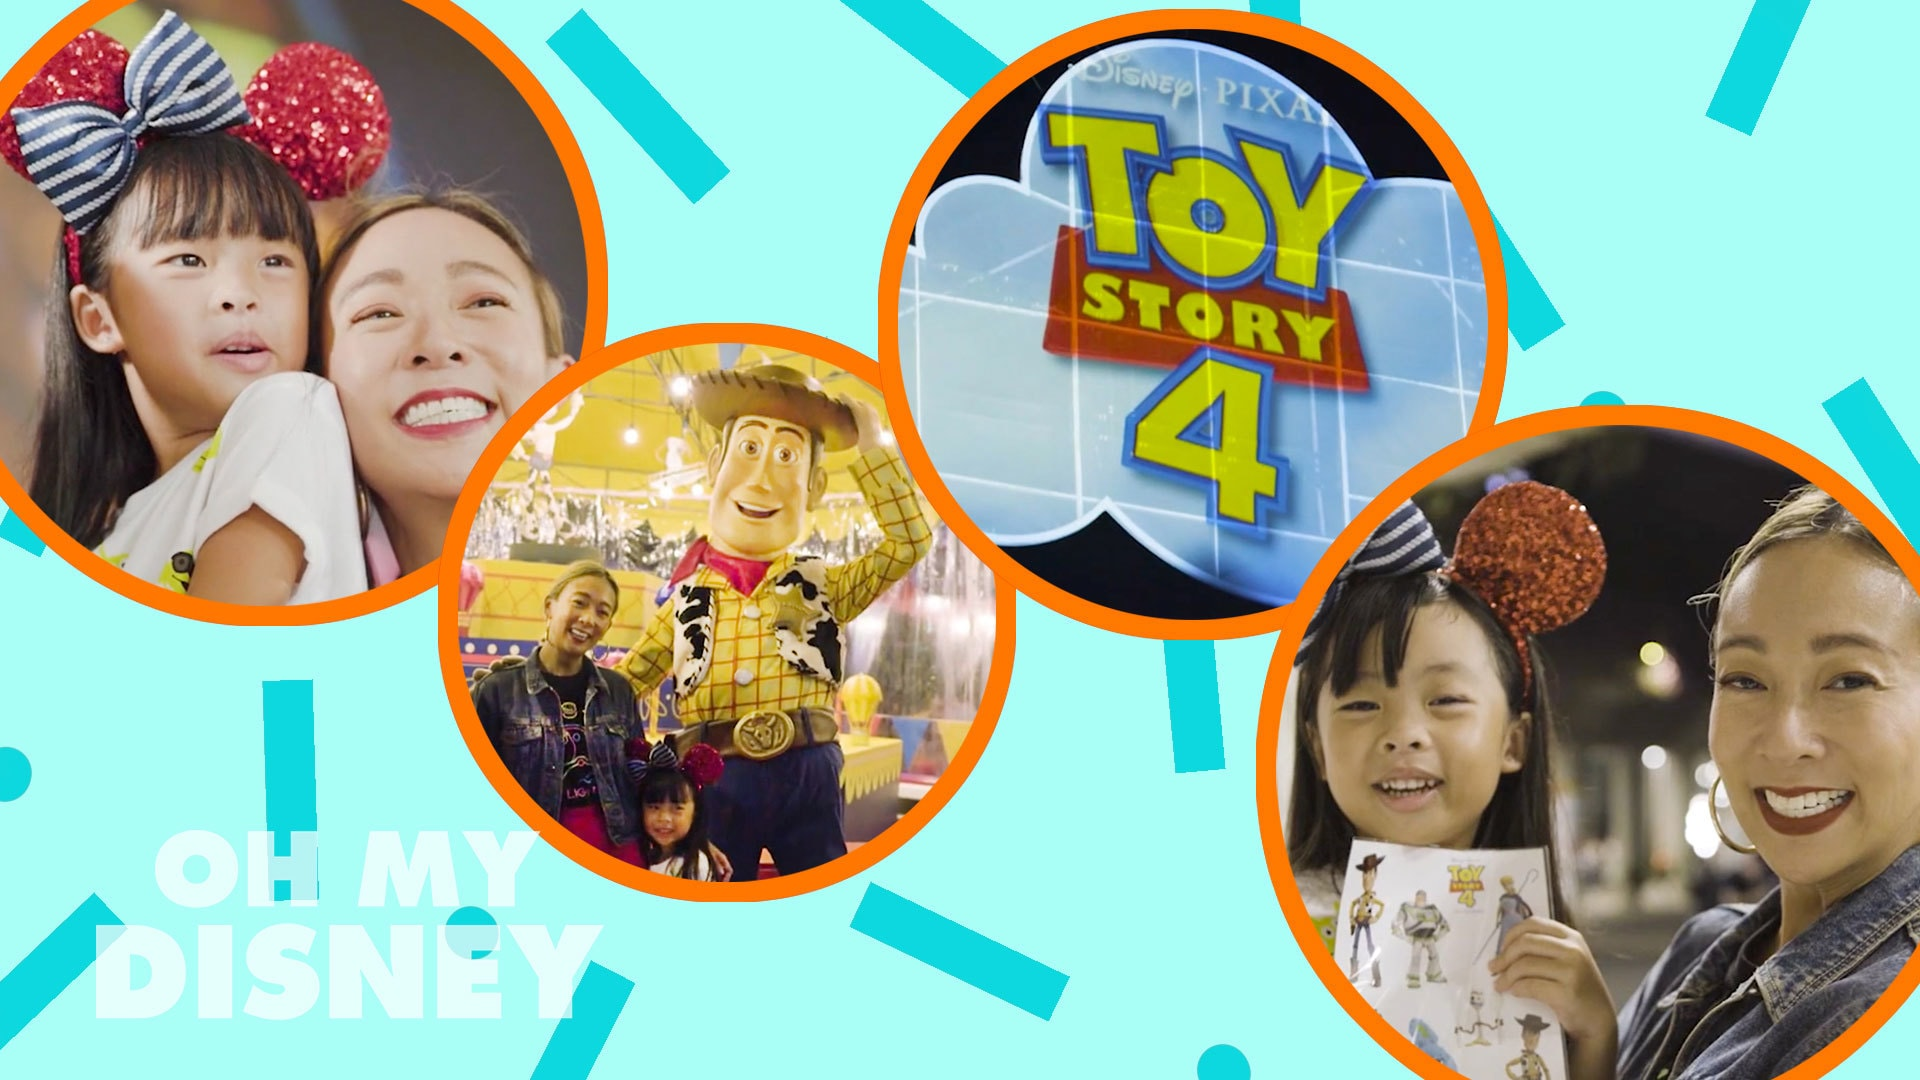 Come Explore Gardens By The Bay's Children's Festival Feat. Toy Story 4